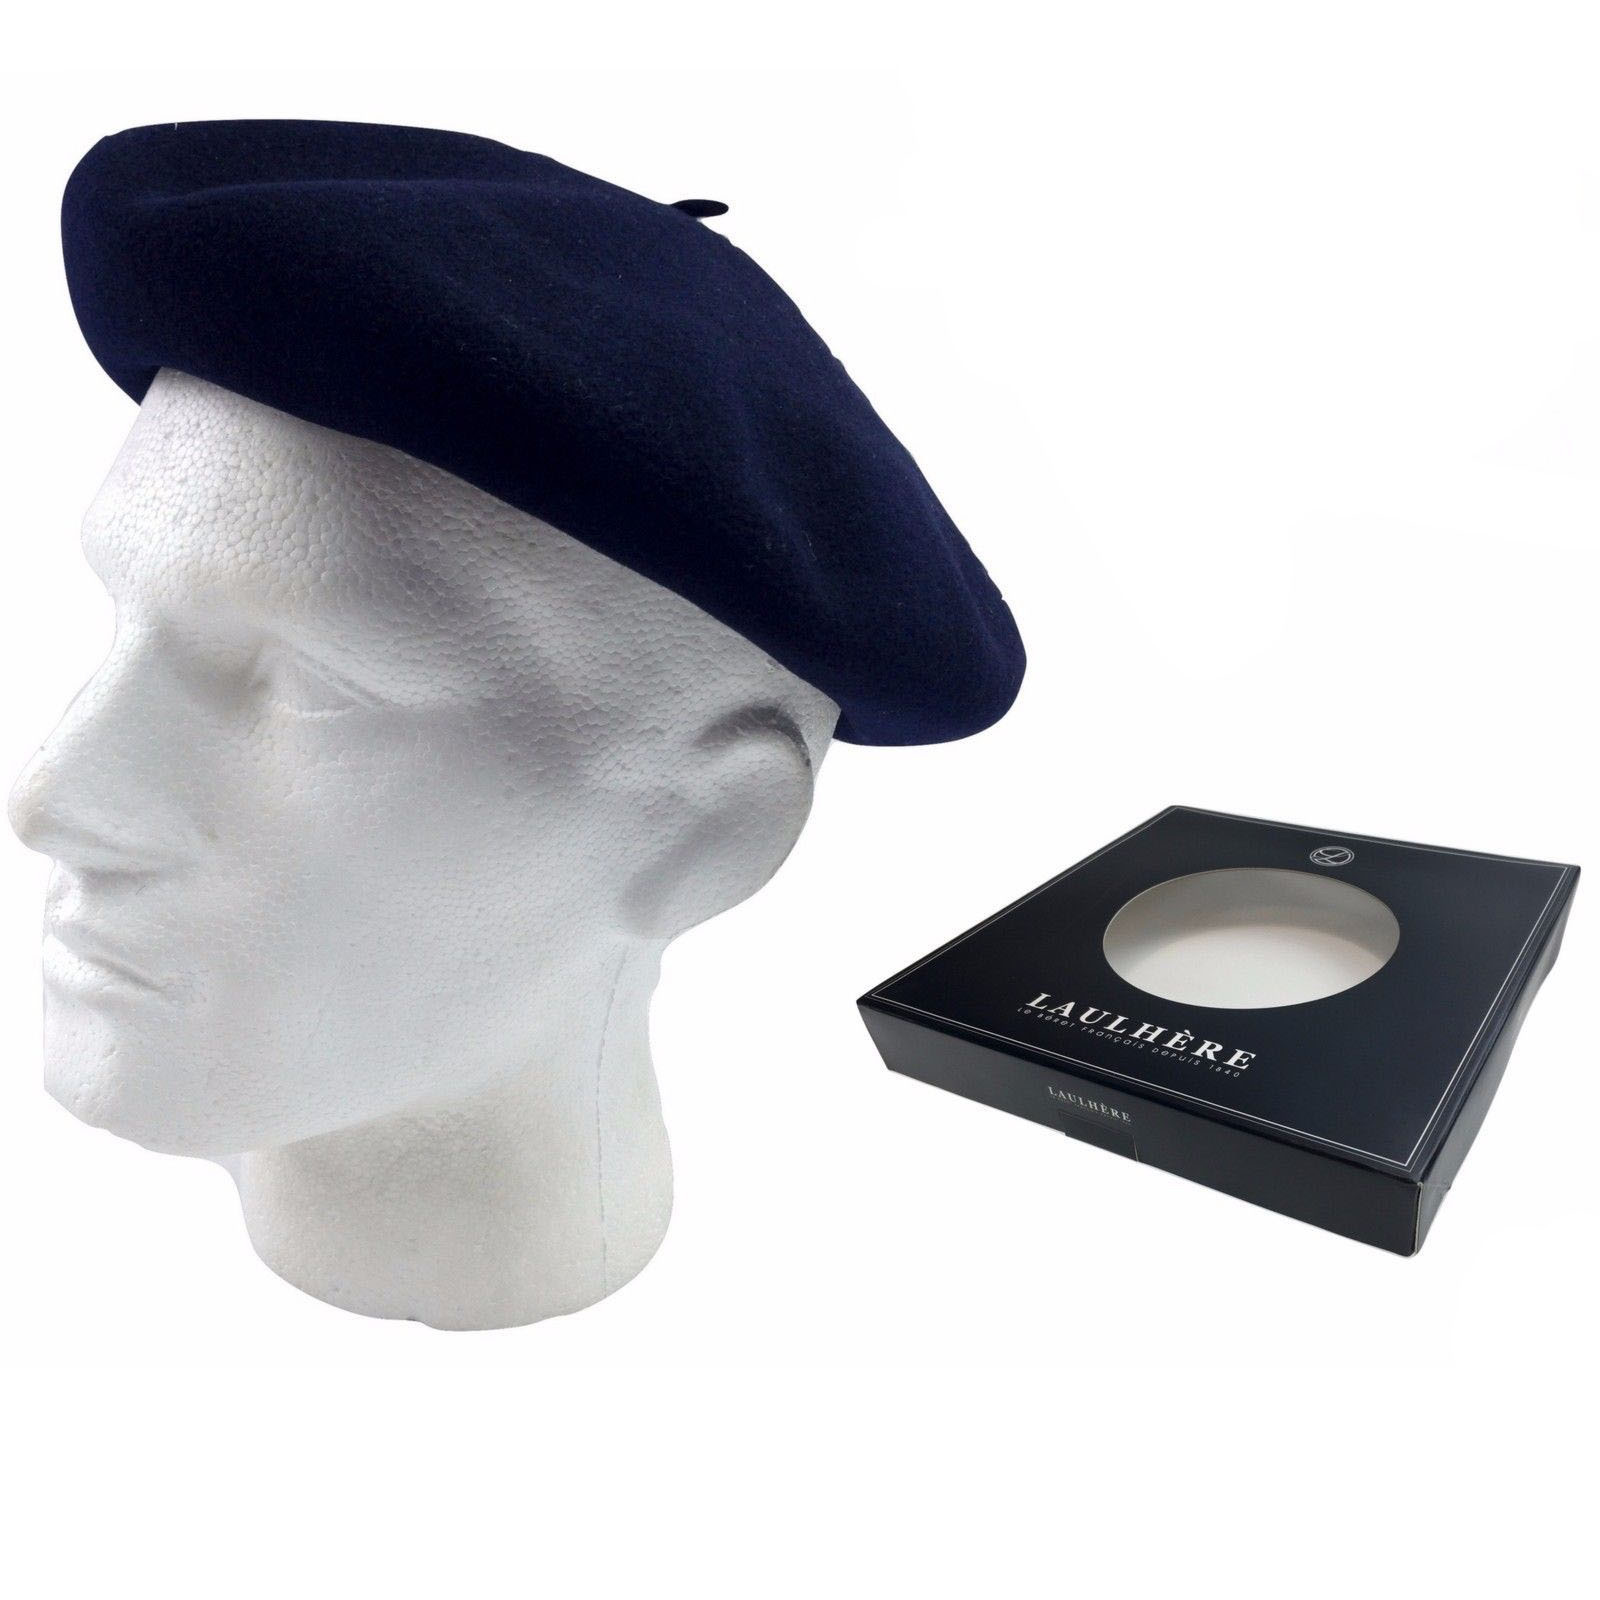 ed15cde49ed LAULHERE Vrai Basque French BERET 100% Wool MADE IN FRANCE ...